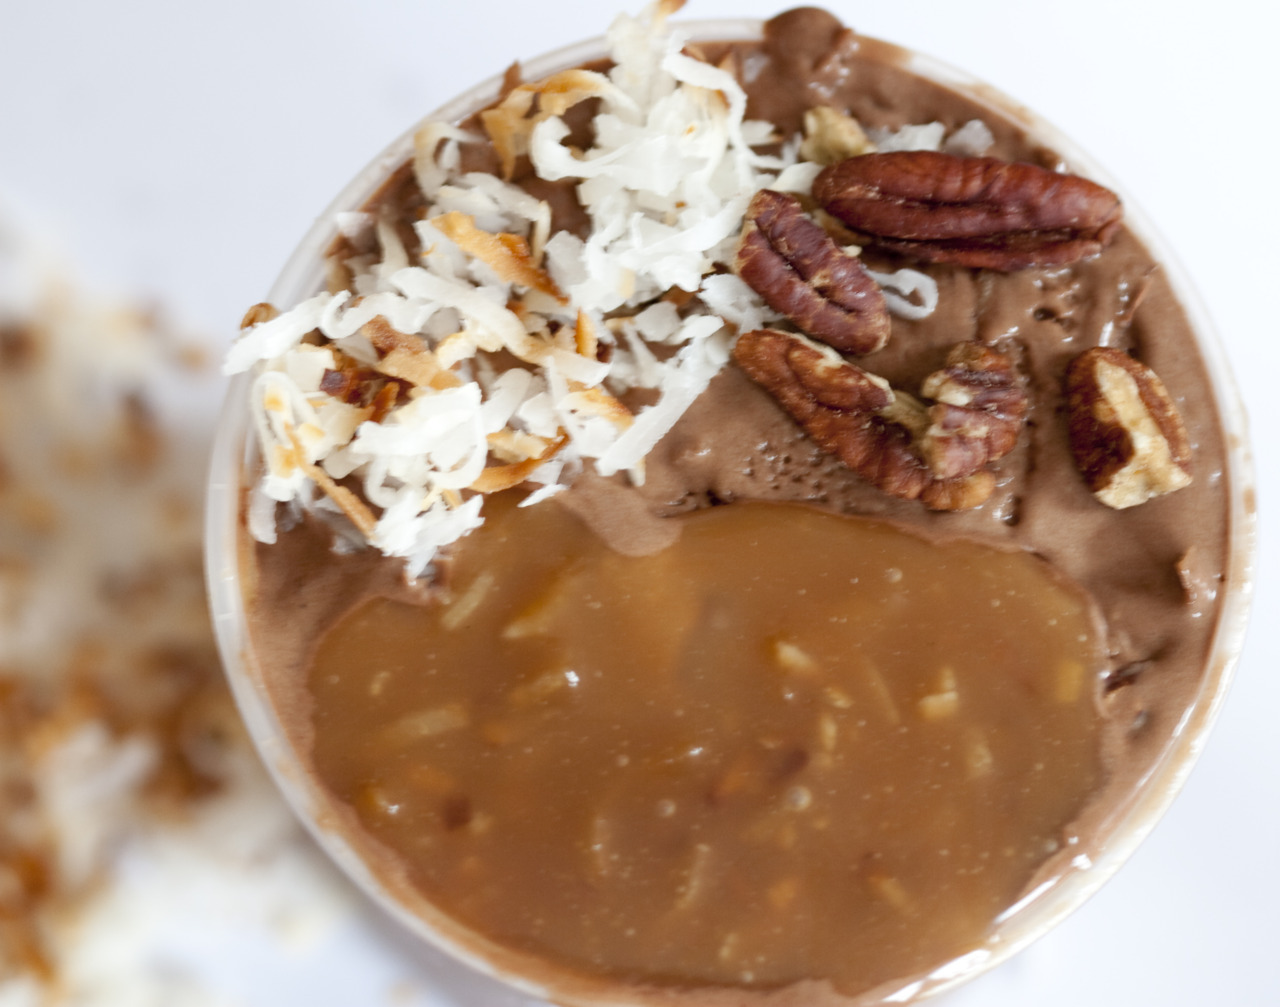 milkmade flavor of the month: German Chocolate Cakechocolate coconut ice cream with toasted pecans, layered with a rum-spiked toasted-coconut caramel sauceOur version of a traditional German Chocolate Cake. In ice cream form, of course. Made this one last summer to send to my father in sunny California in place of the actual German Chocolate Cake that we bake him every year for his birthday. Now we're finally releasing it for our members. Made with Mast Brothers Conacado chocolate. That's one intense pint!